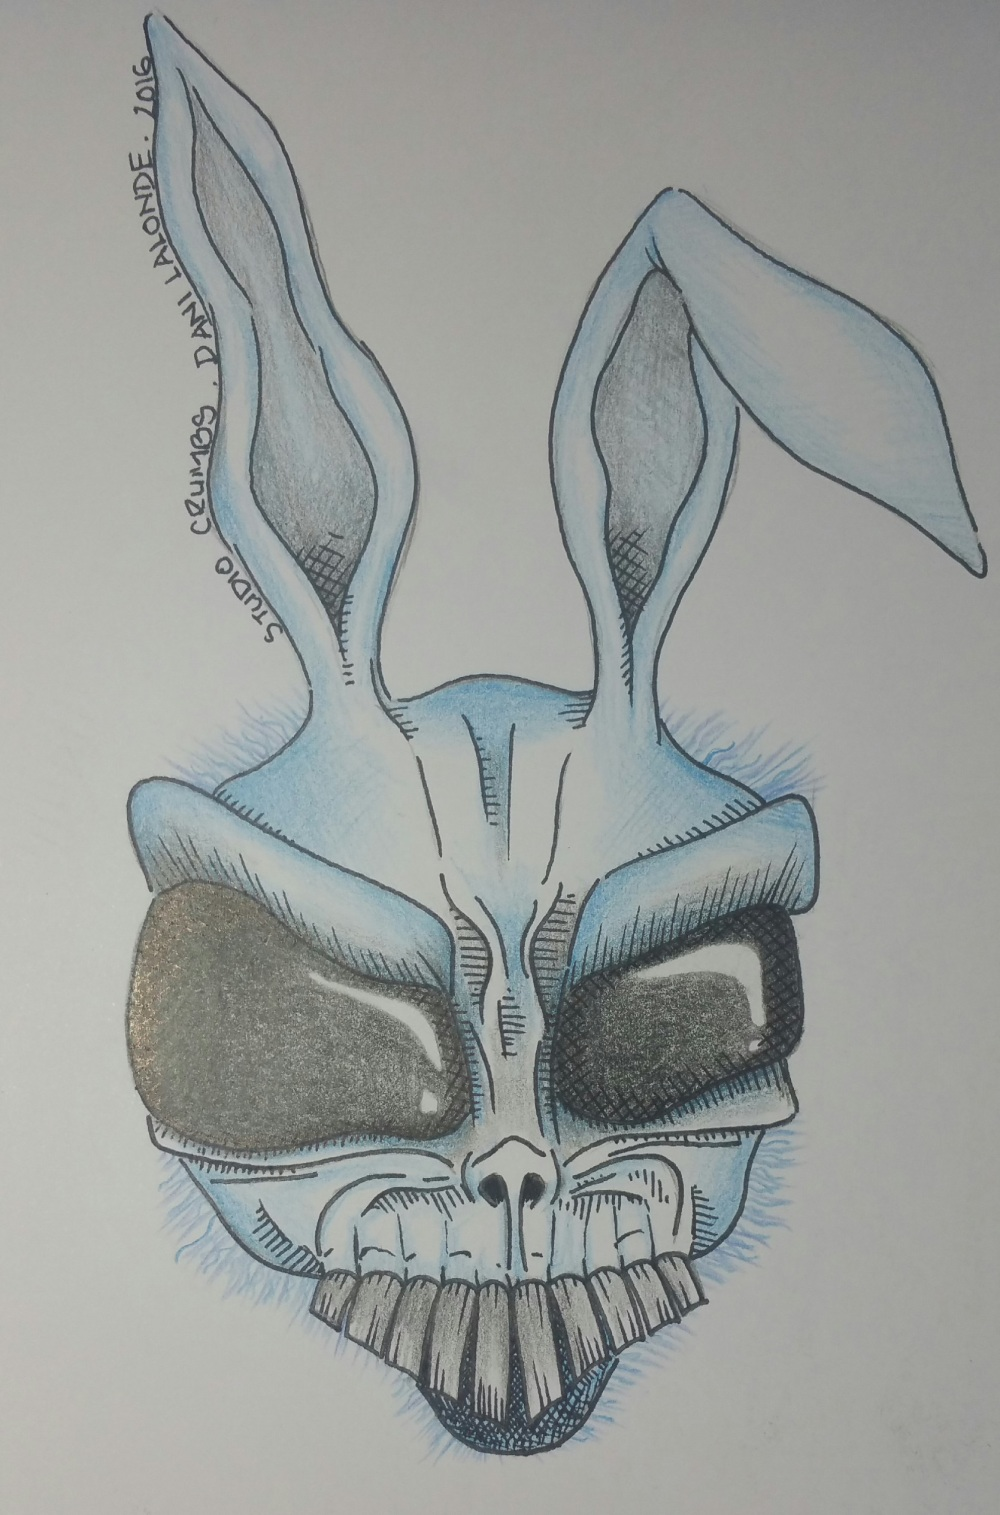 Frank_Donnie_Darko_Sketch_004_Studio_Crumbs_Dani_Lalonde